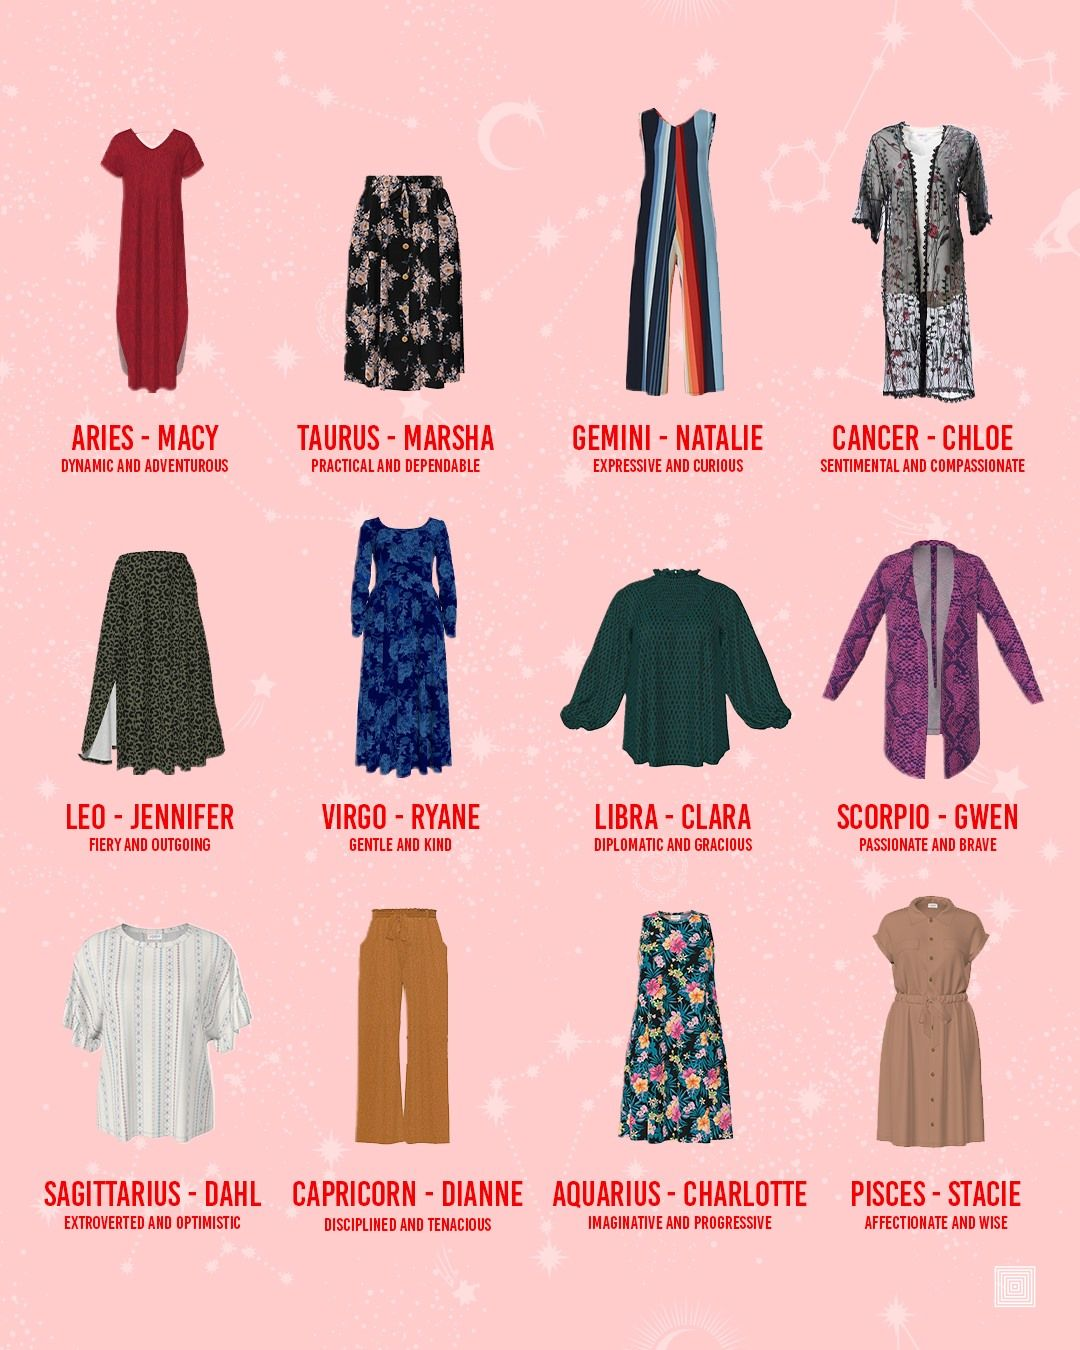 The One Thing that Shocked Me About LuLaRoe